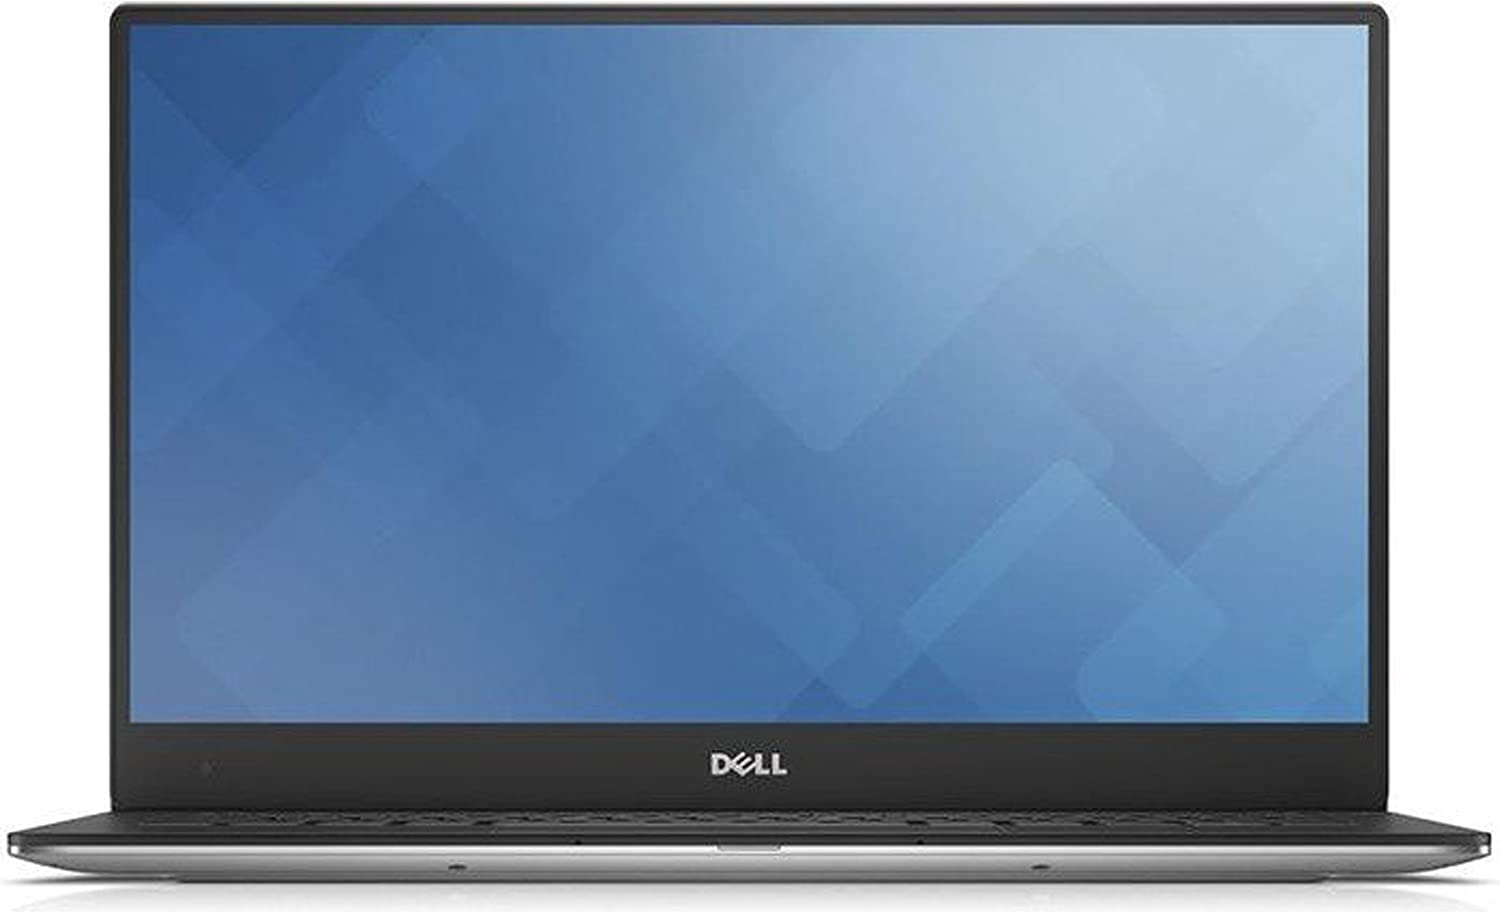 DELL XPS 13 9350 QHD+ 1800P Touch I7-6500U 3.1GHZ 8GB RAM 256GB PCIE SSD Backlit Keyboard Win 10 (Certified Refurbished)